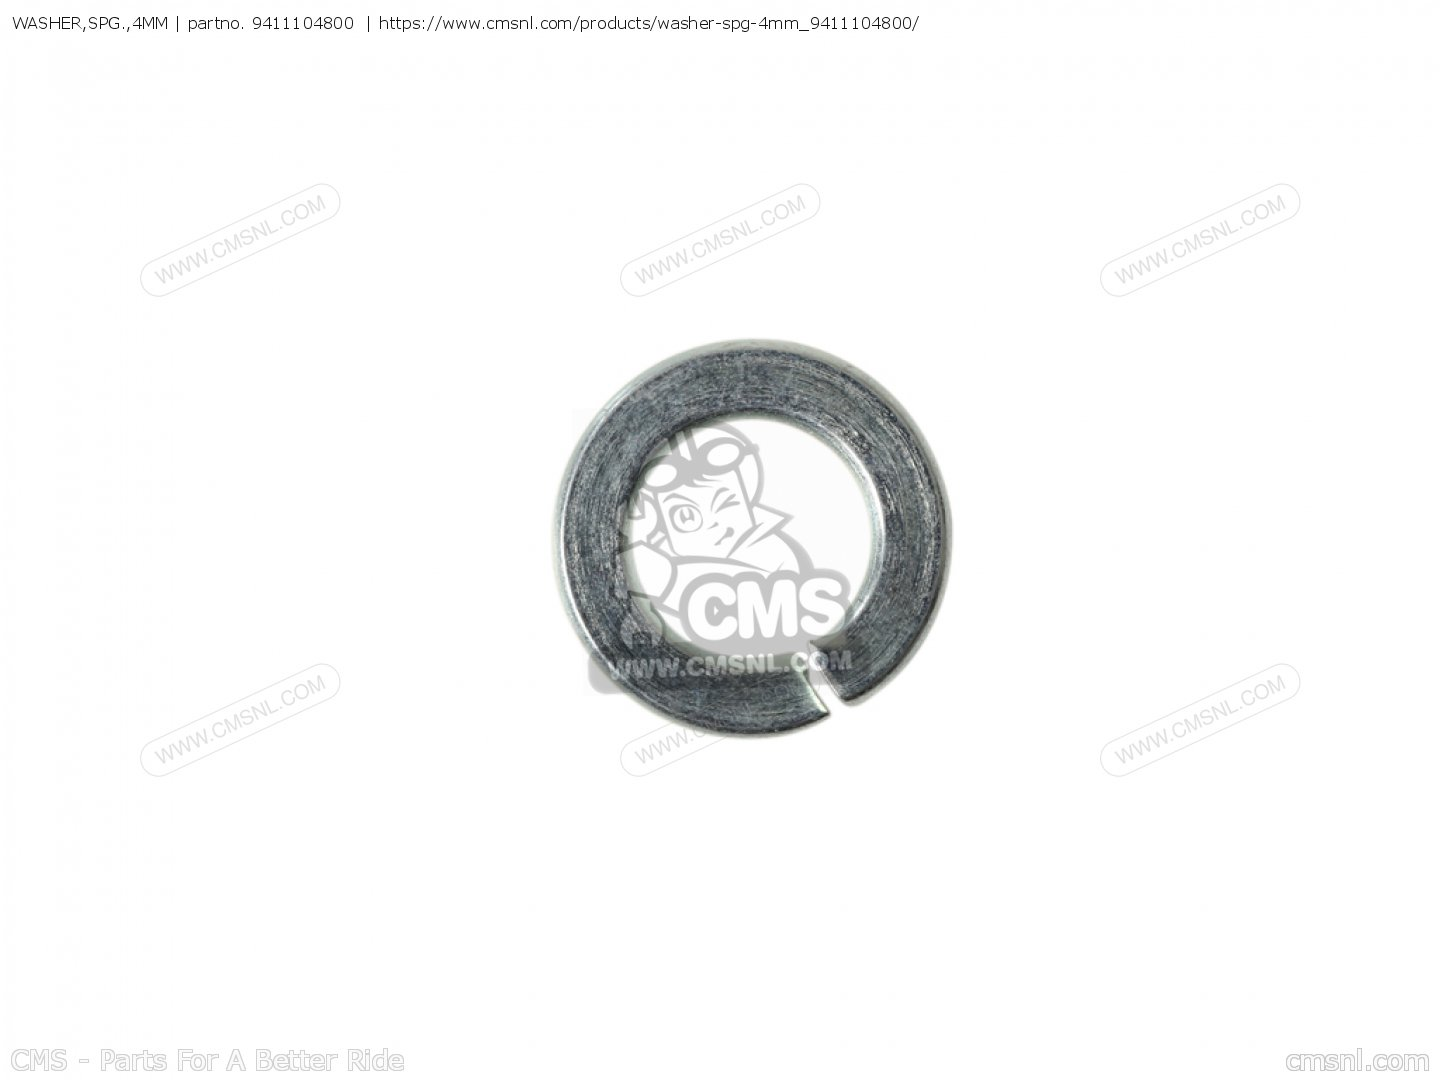 WASHER,SPG.,4MM for CB400N 1981 (B) GERMANY /TYPE 3 20 PS